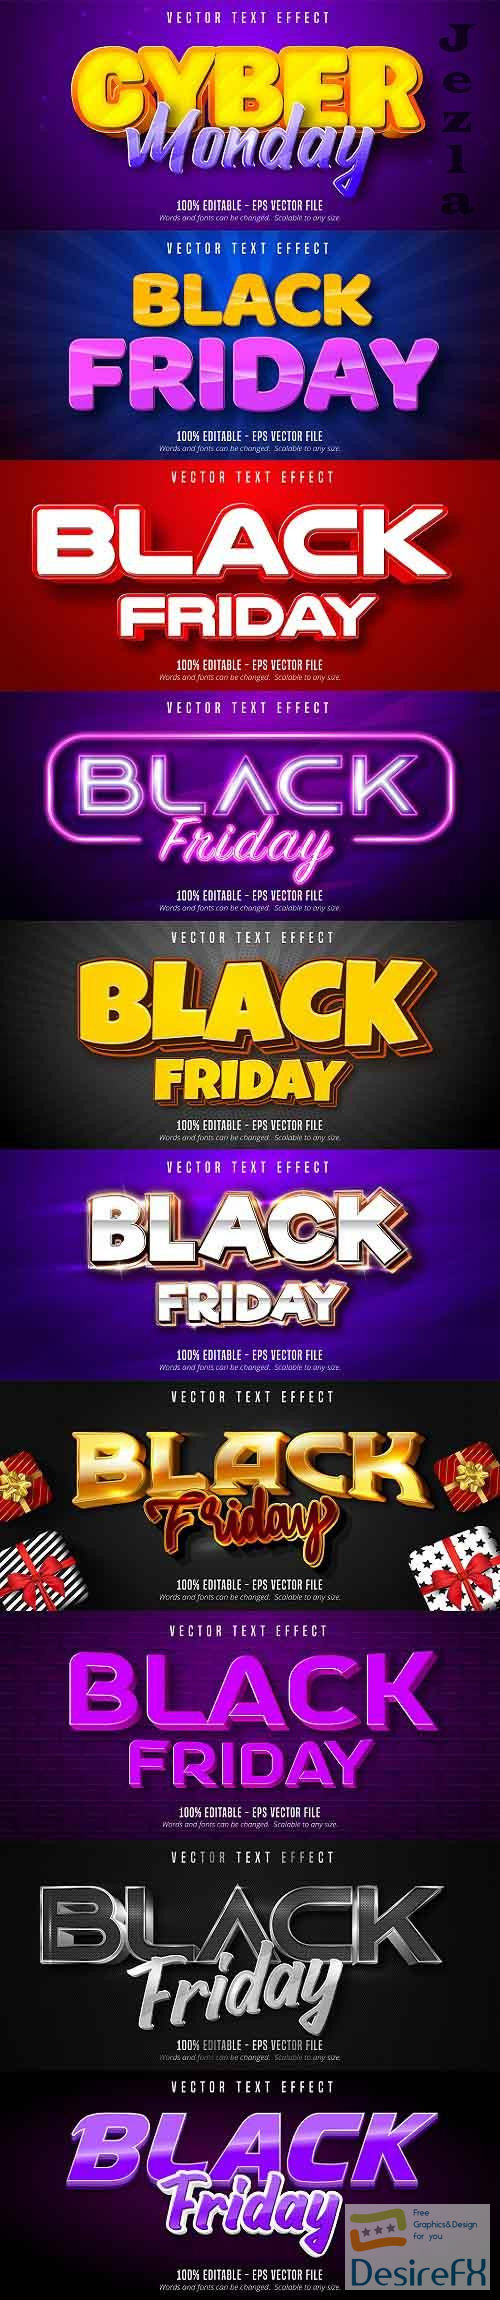 Editable font effect text collection illustration design 205 - Black Friday Text